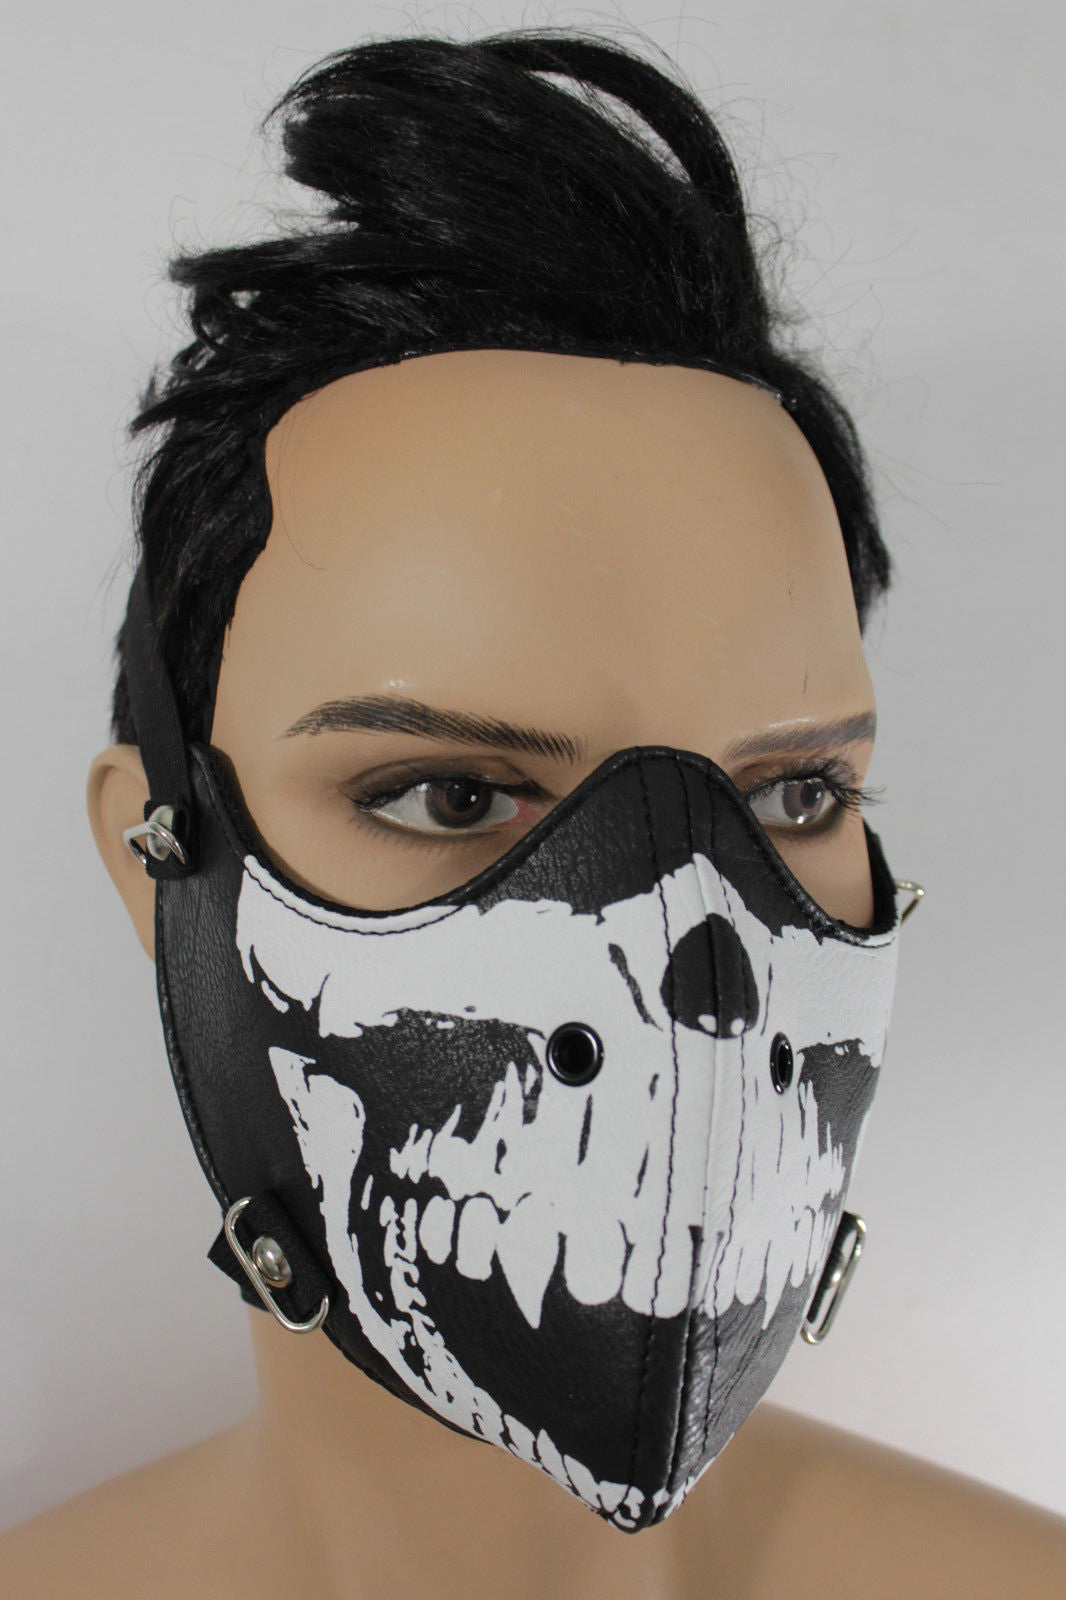 black white skull print muzzle s&m rave goth face mask men halloween